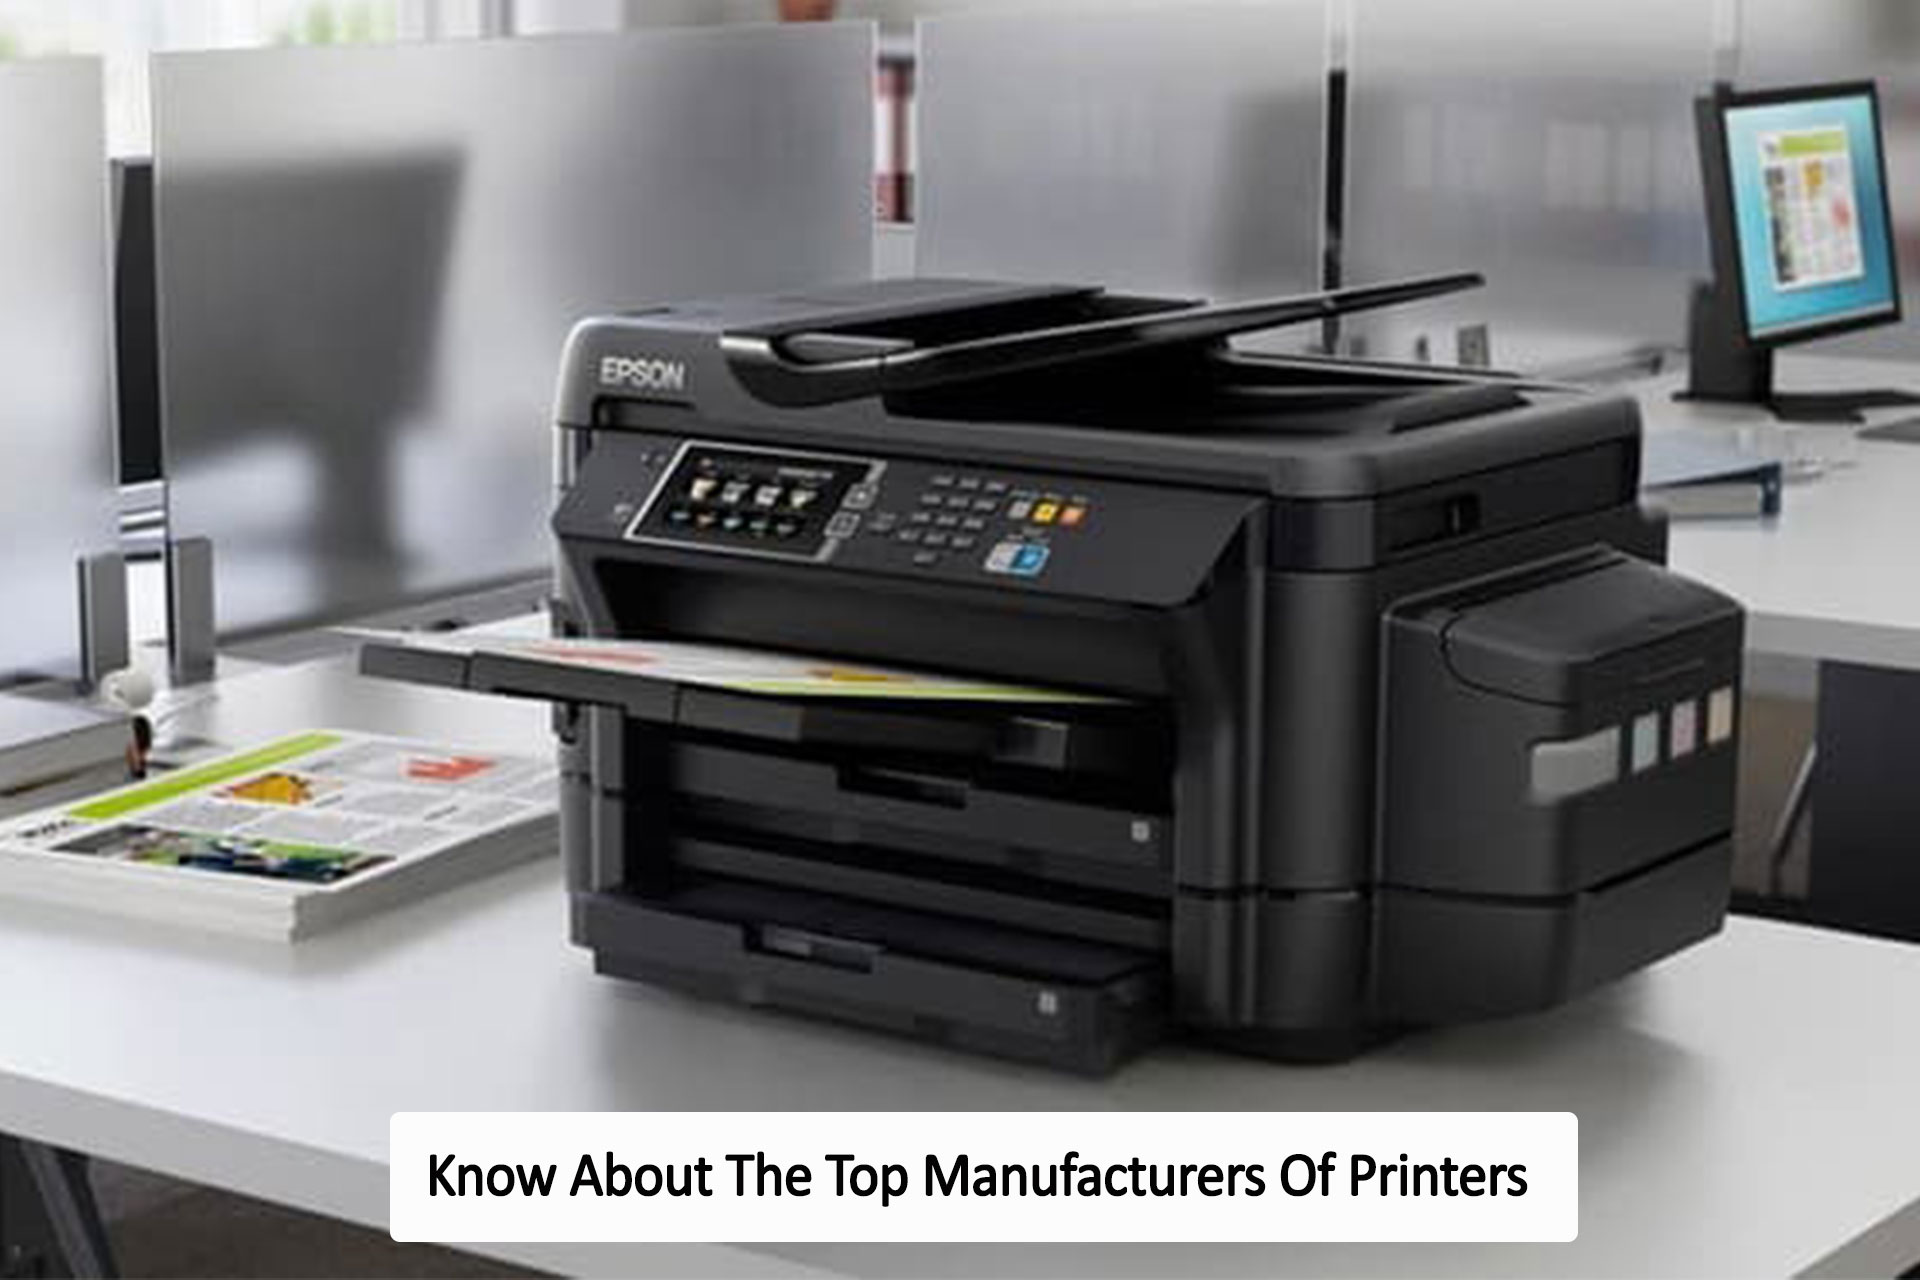 Know About The Top Manufacturers Of Printers